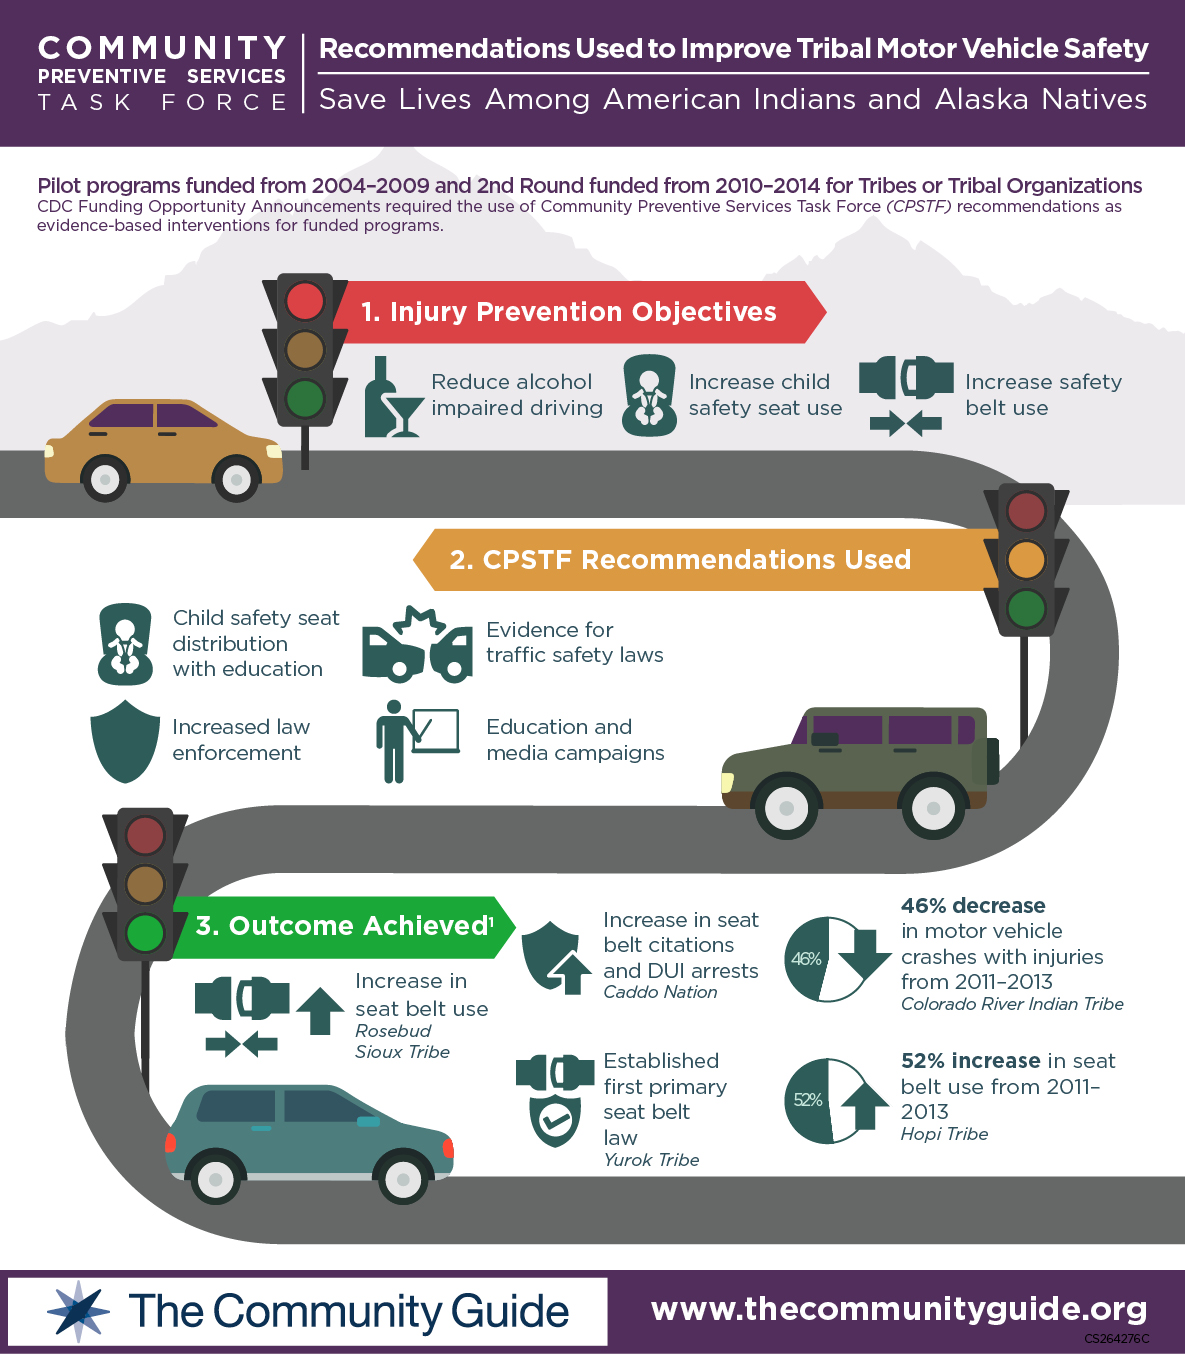 Task Force Recommendations Used to Improve Tribal Motor Vehicle Safety Save Lives Among American Indians and Alaska Natives.